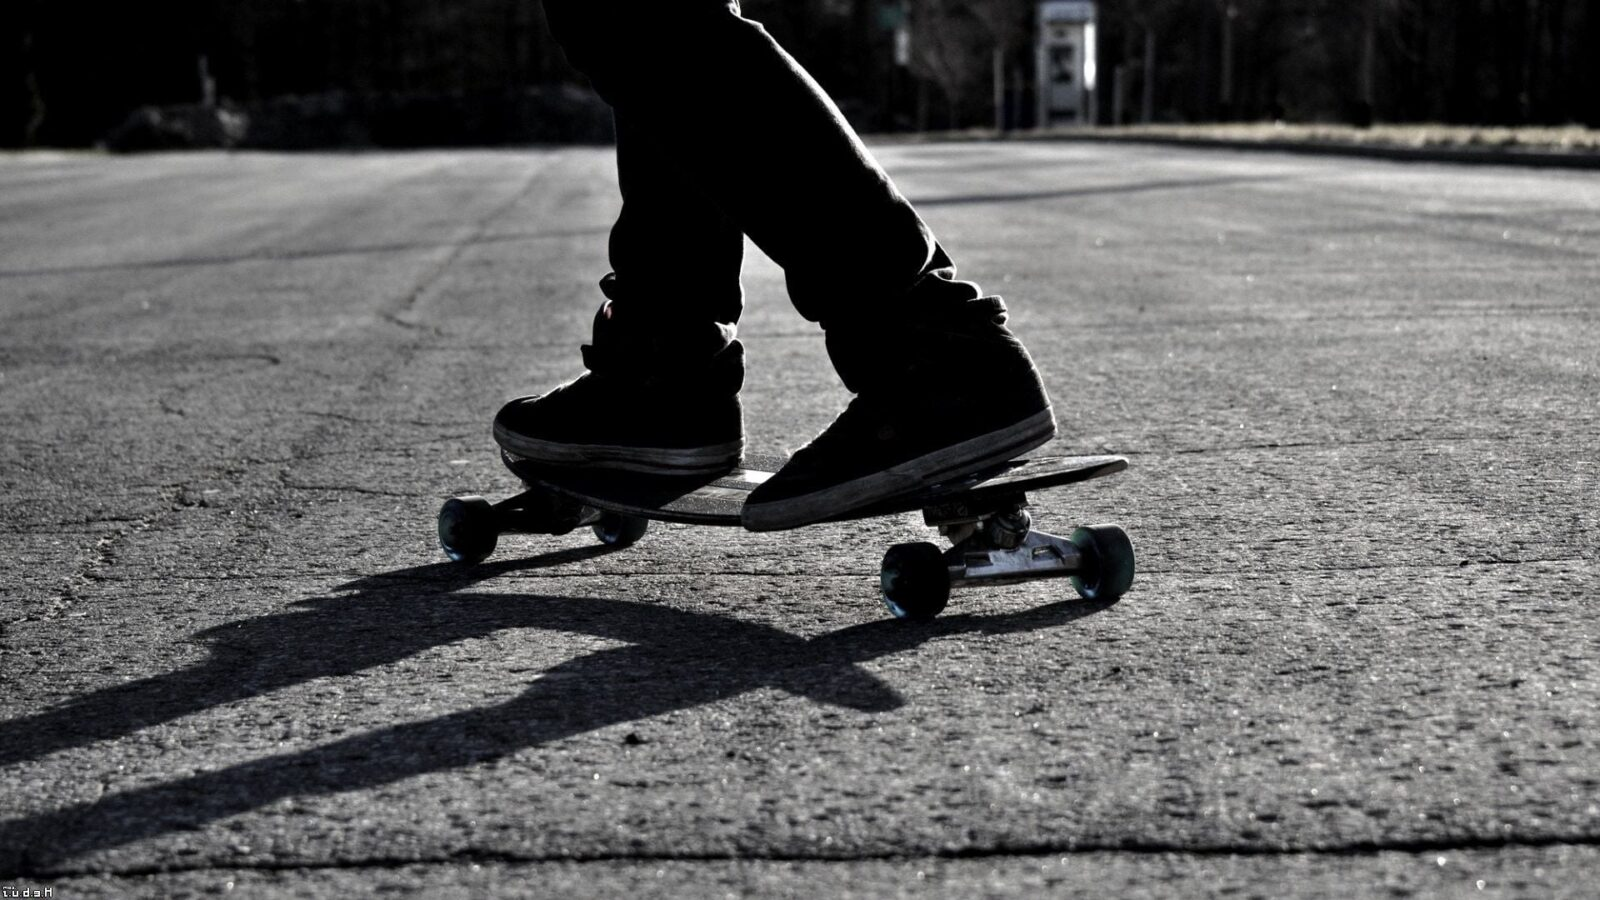 Skateboard Wallpaper Black And White | www.pixshark.com ...